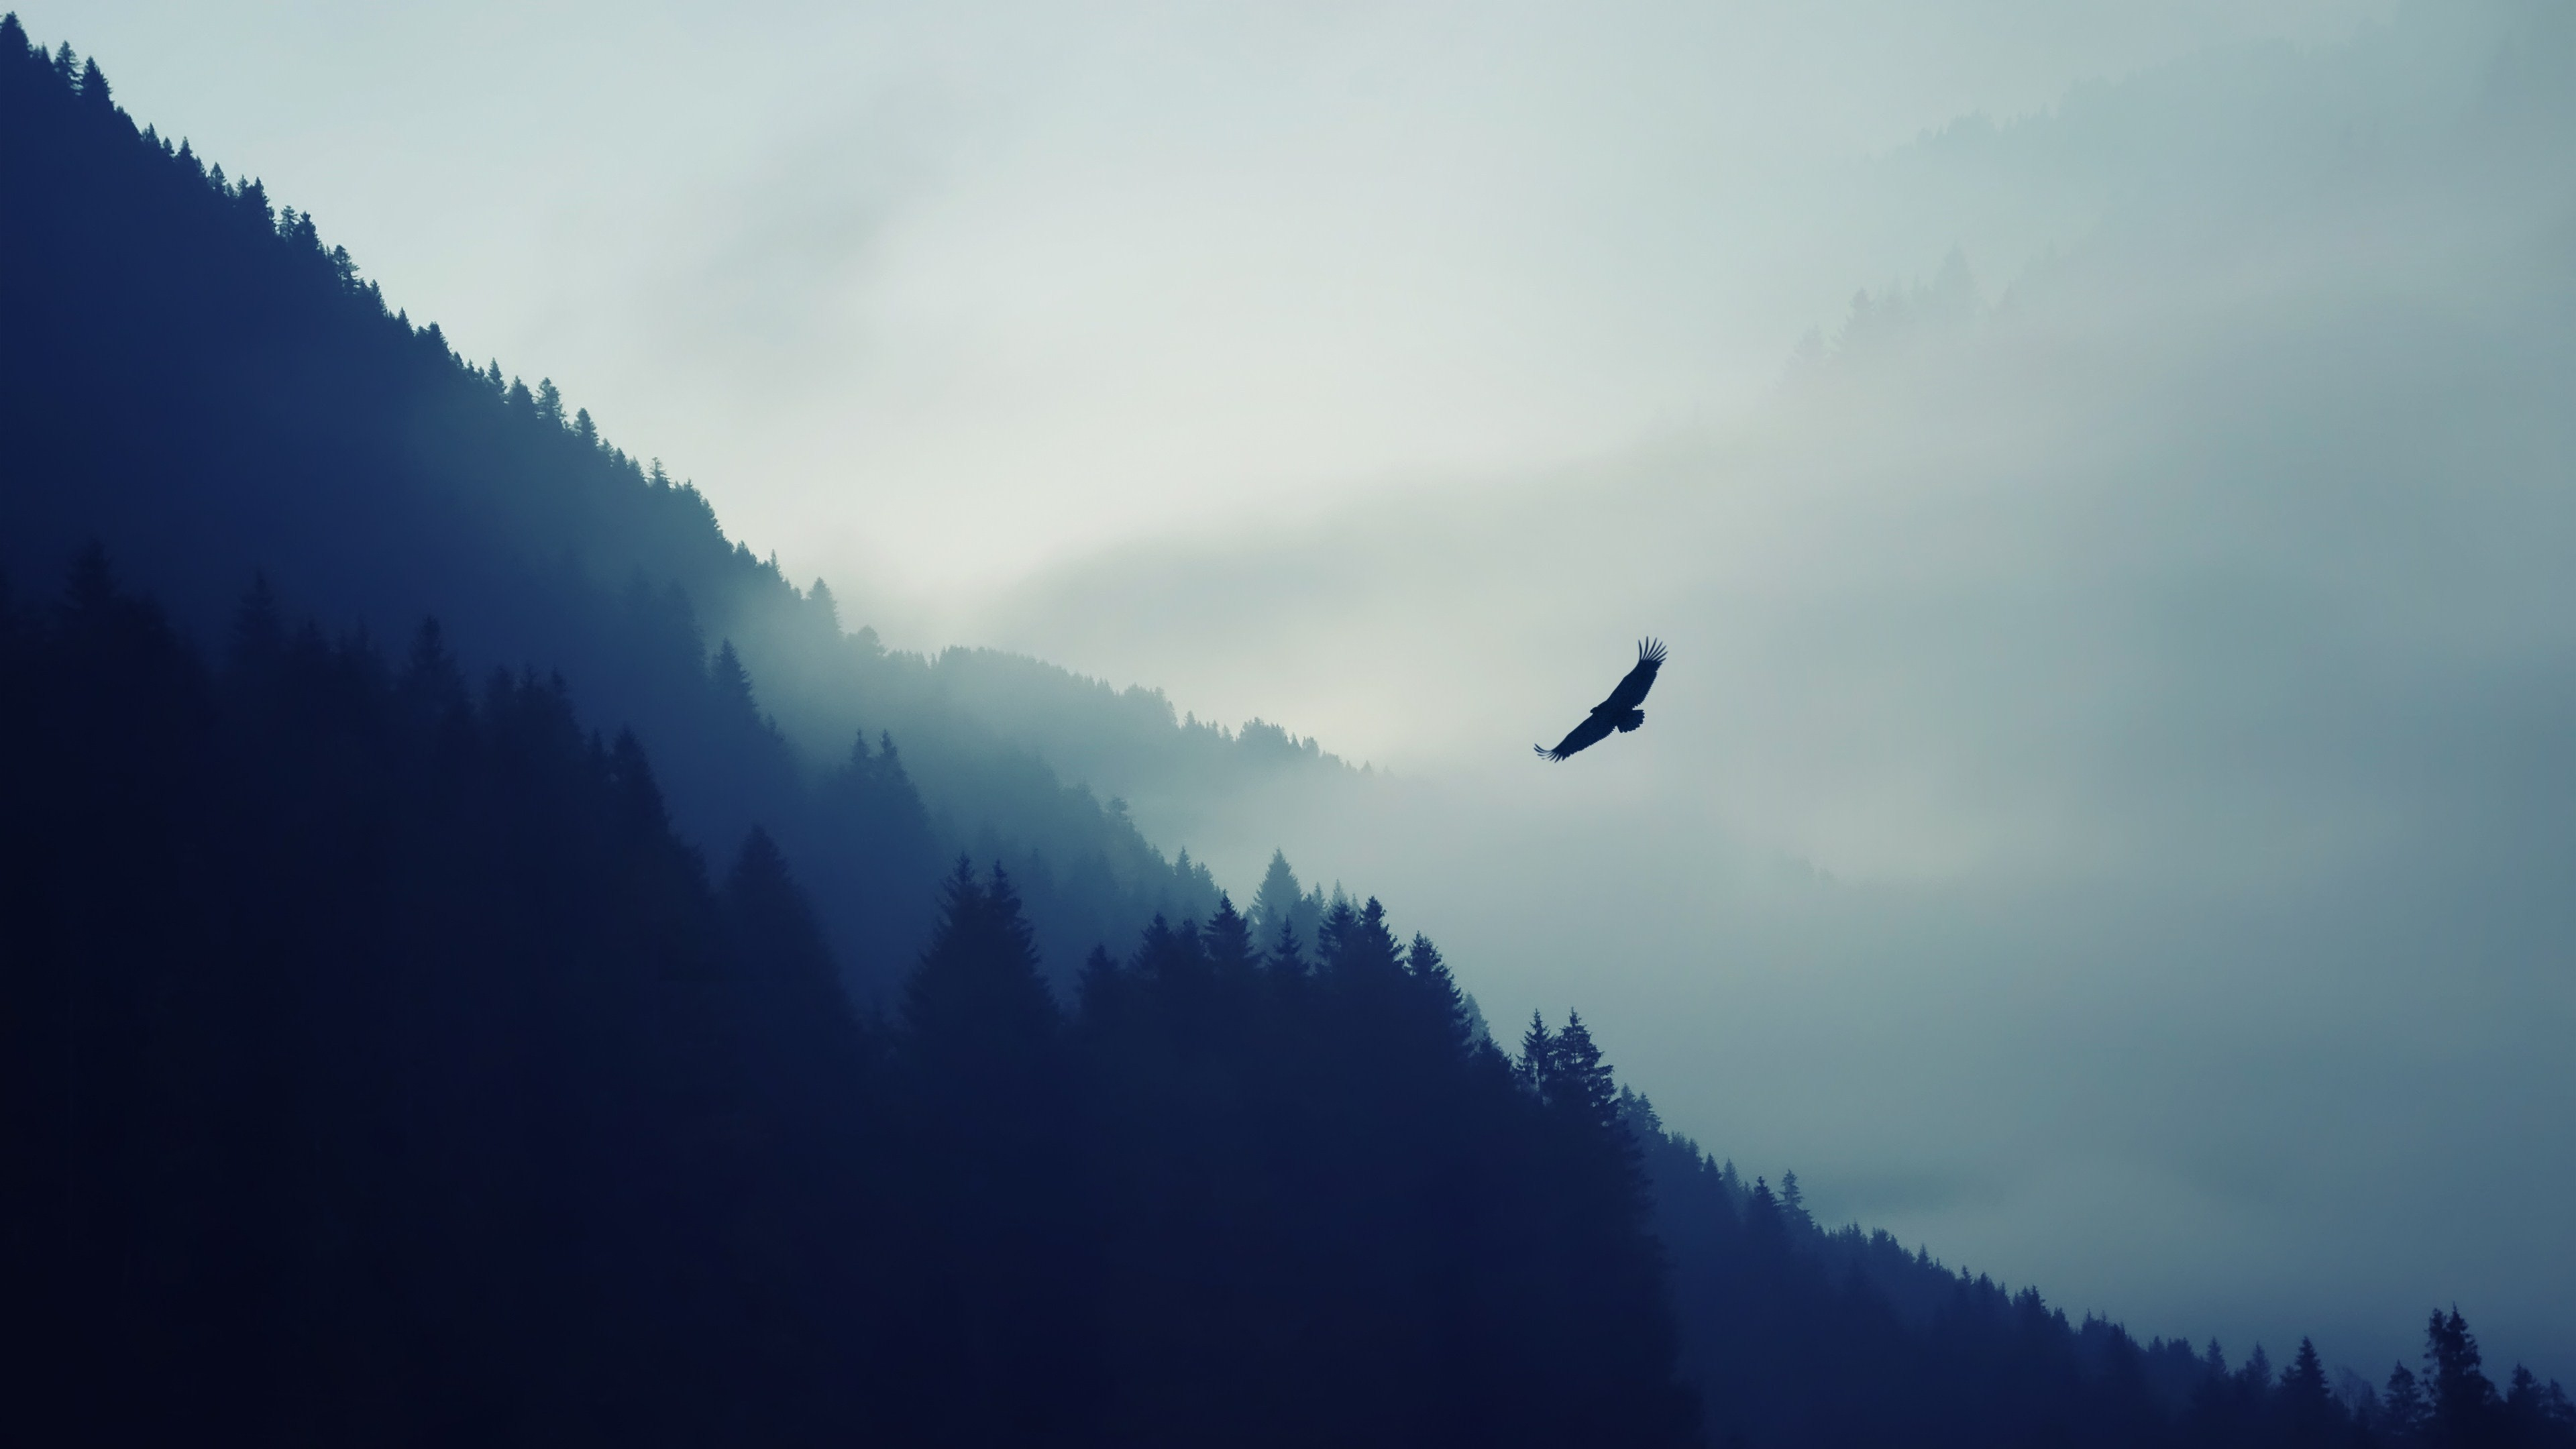 Best Wallpaper Mac Landscape - forest-3840x2160-5k-4k-wallpaper-fog-eagle-landscape-wallpaper-3441  Collection_136882.jpg